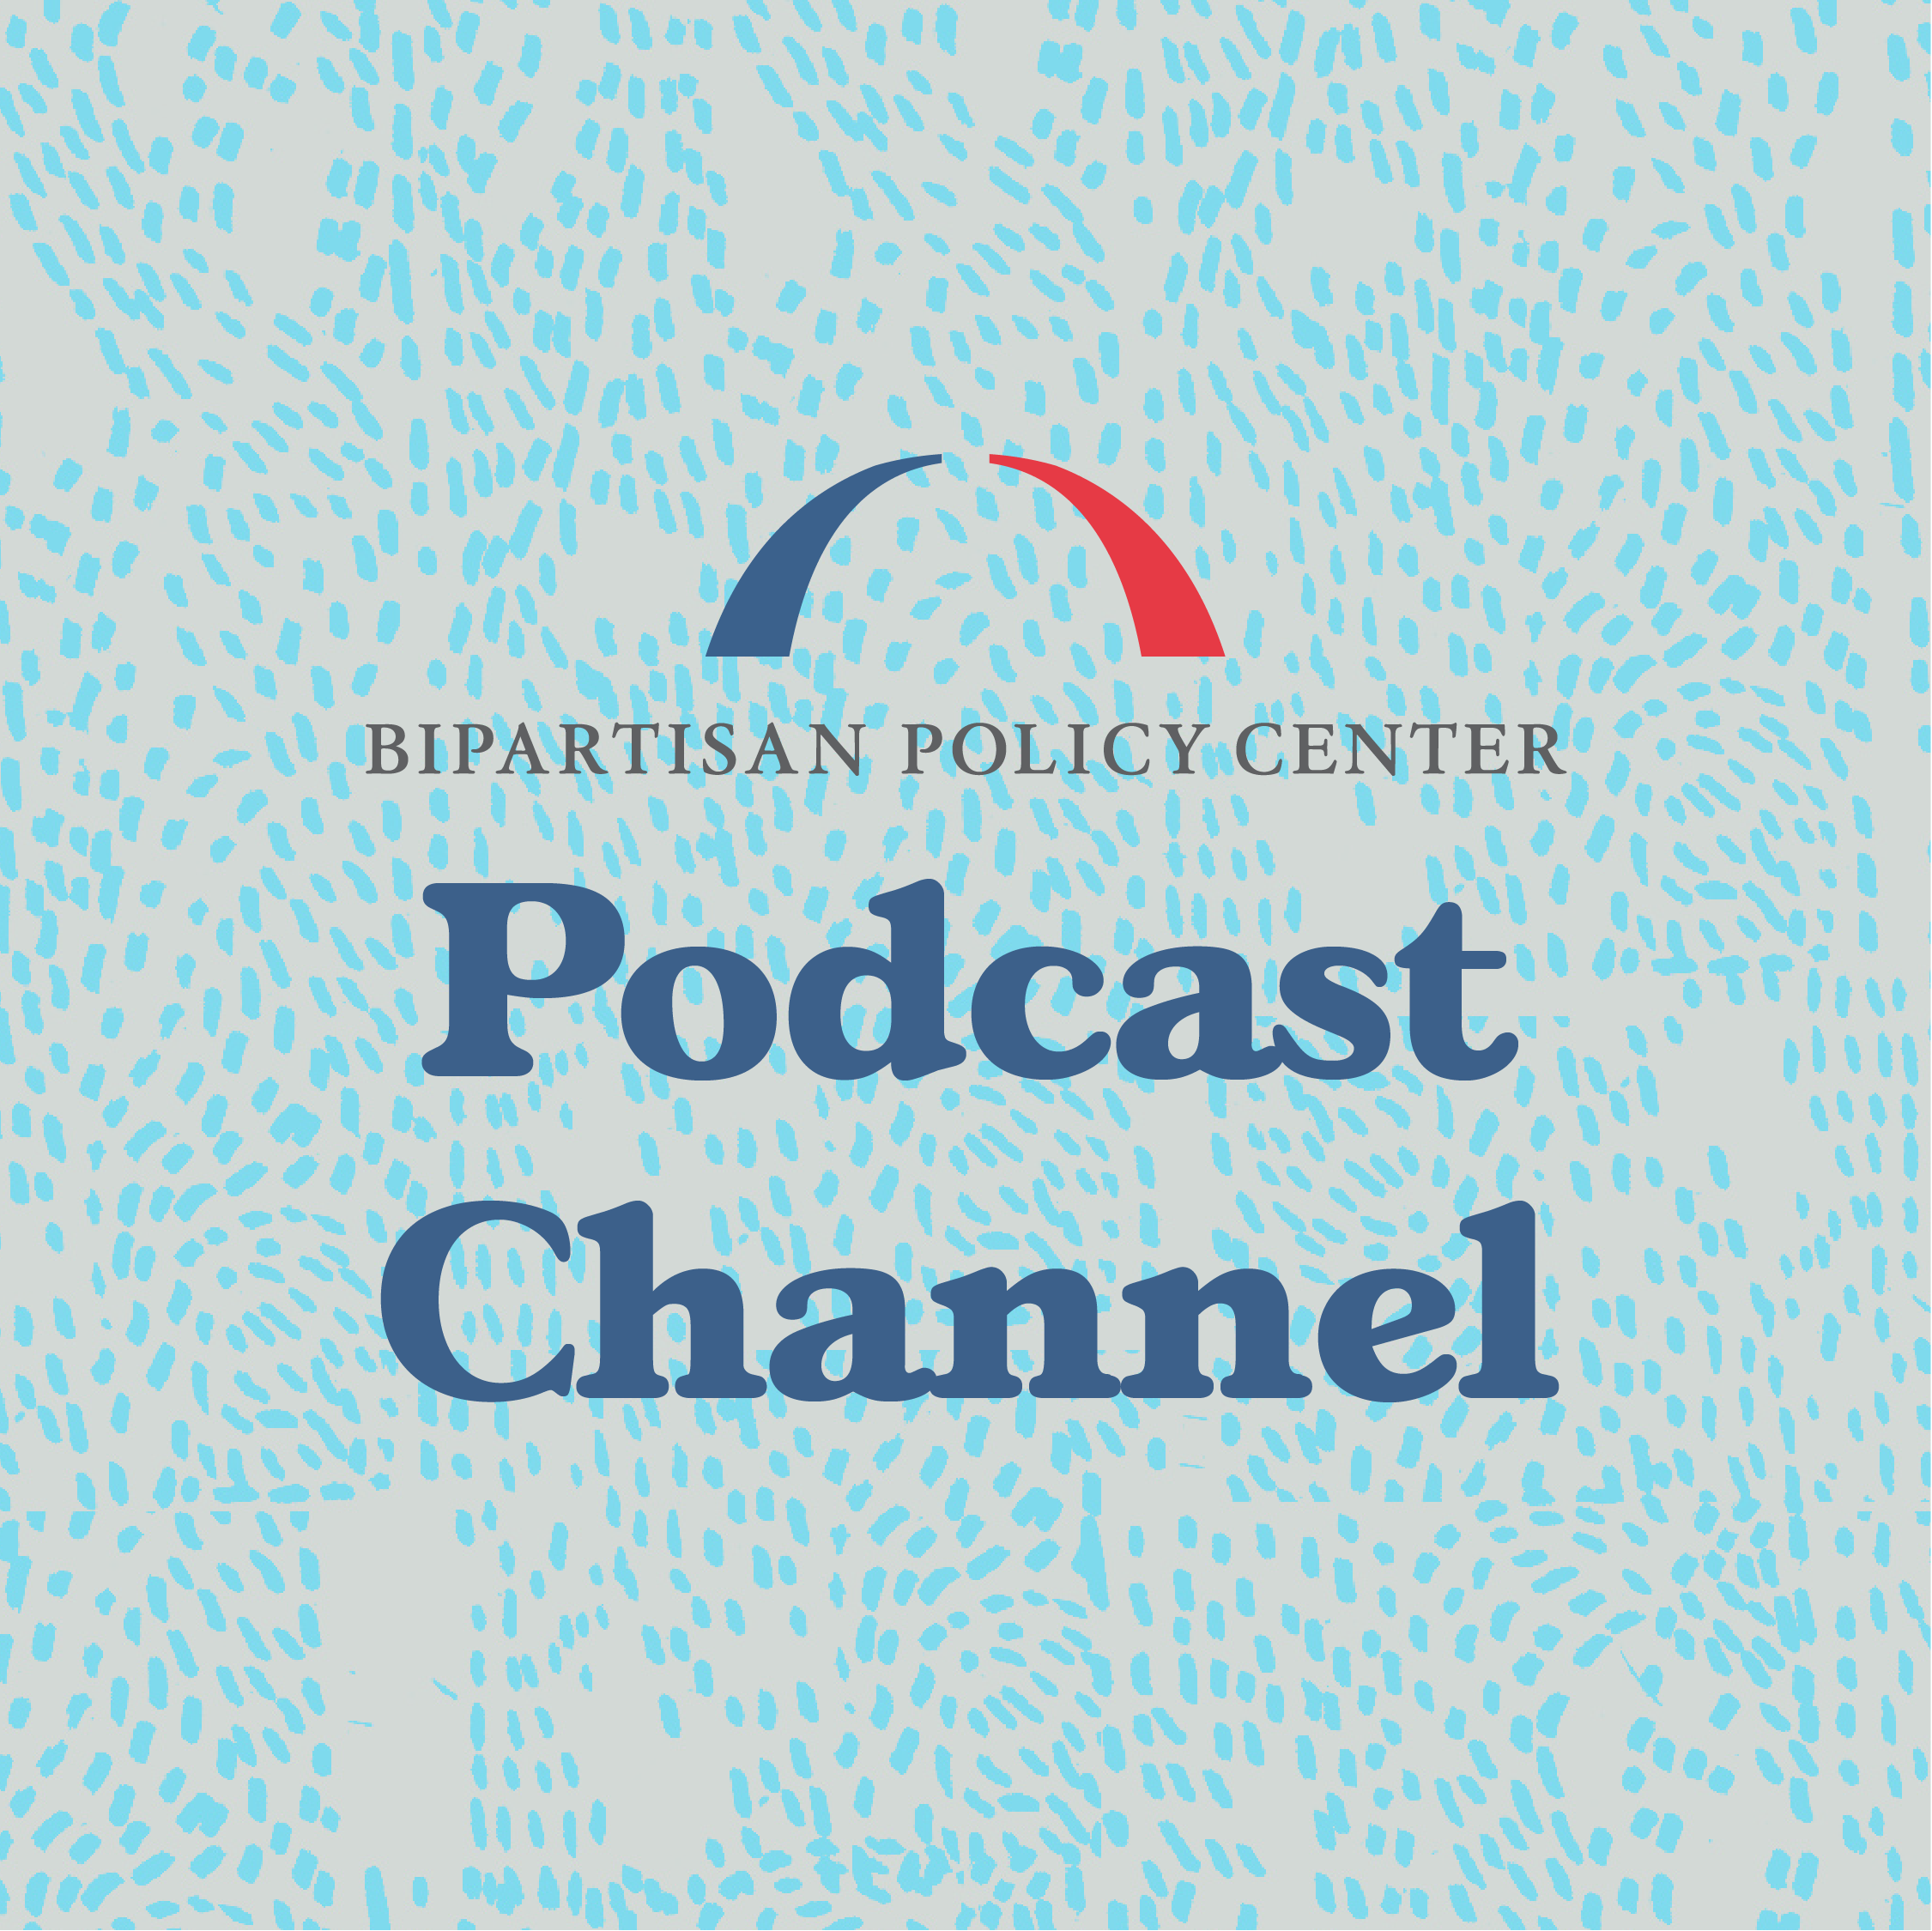 BPC Podcast Channel show art